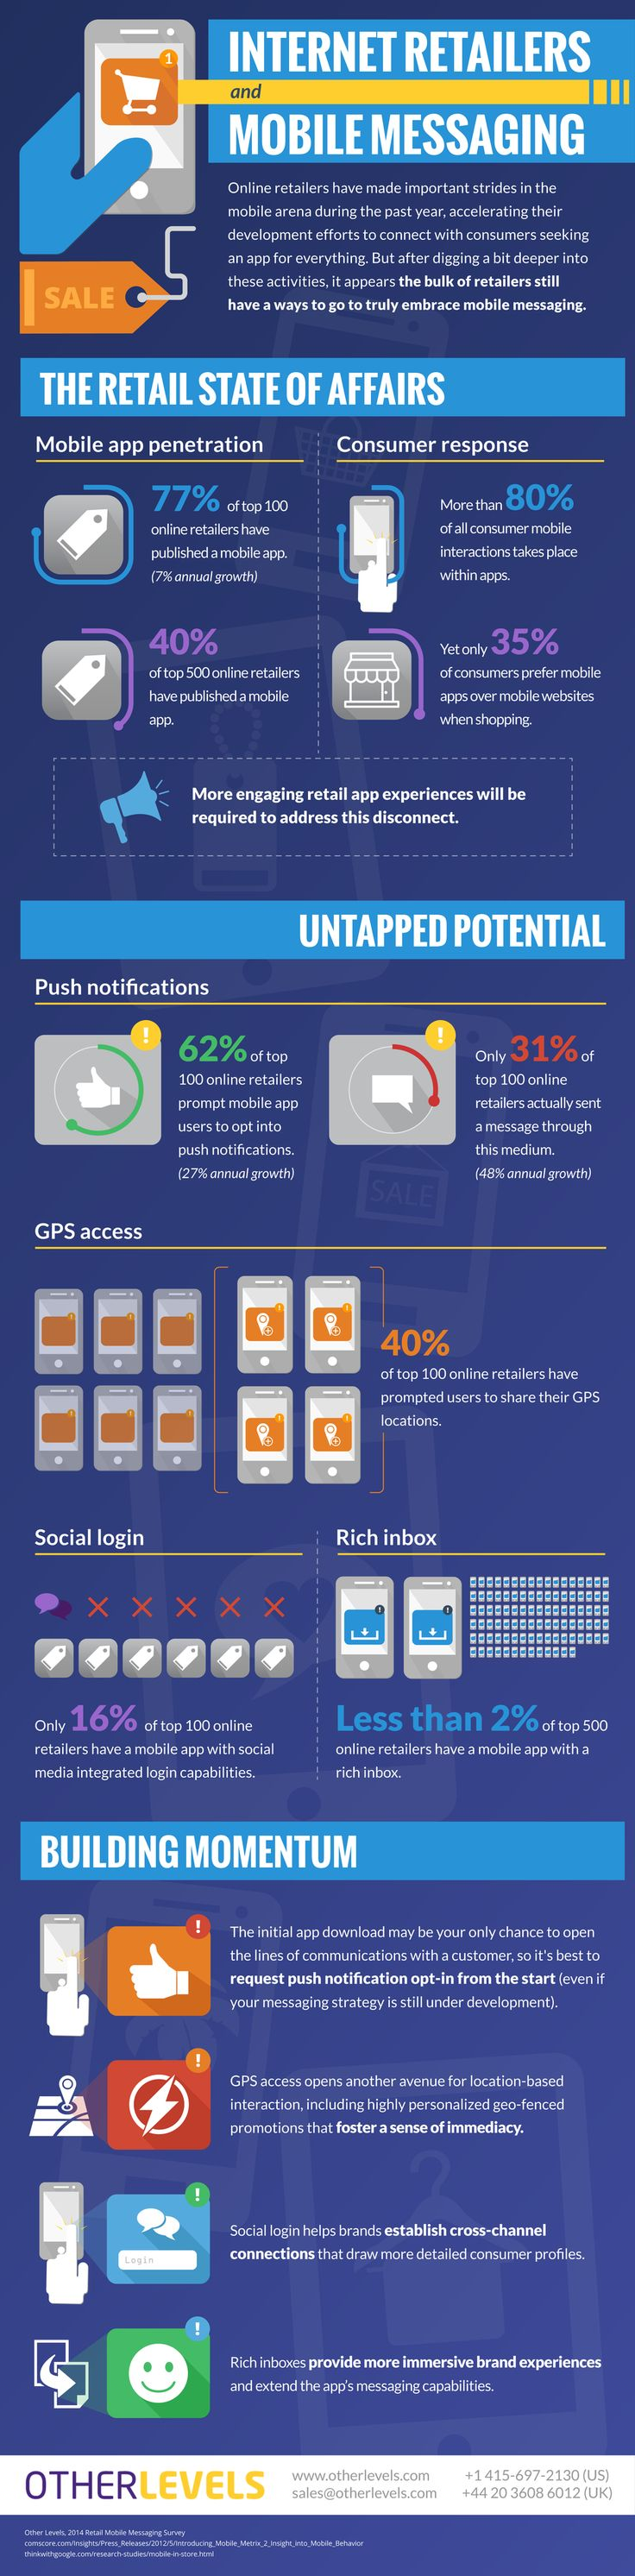 77 percent of retailers have a mobile app—but only 31% of the top 100 internet retailers (we're talking Overstock.com, Redbox, H&M) sent a push notification to opted-in mobile users. This and other interesting stats from a new study via OtherLevels. #infographic